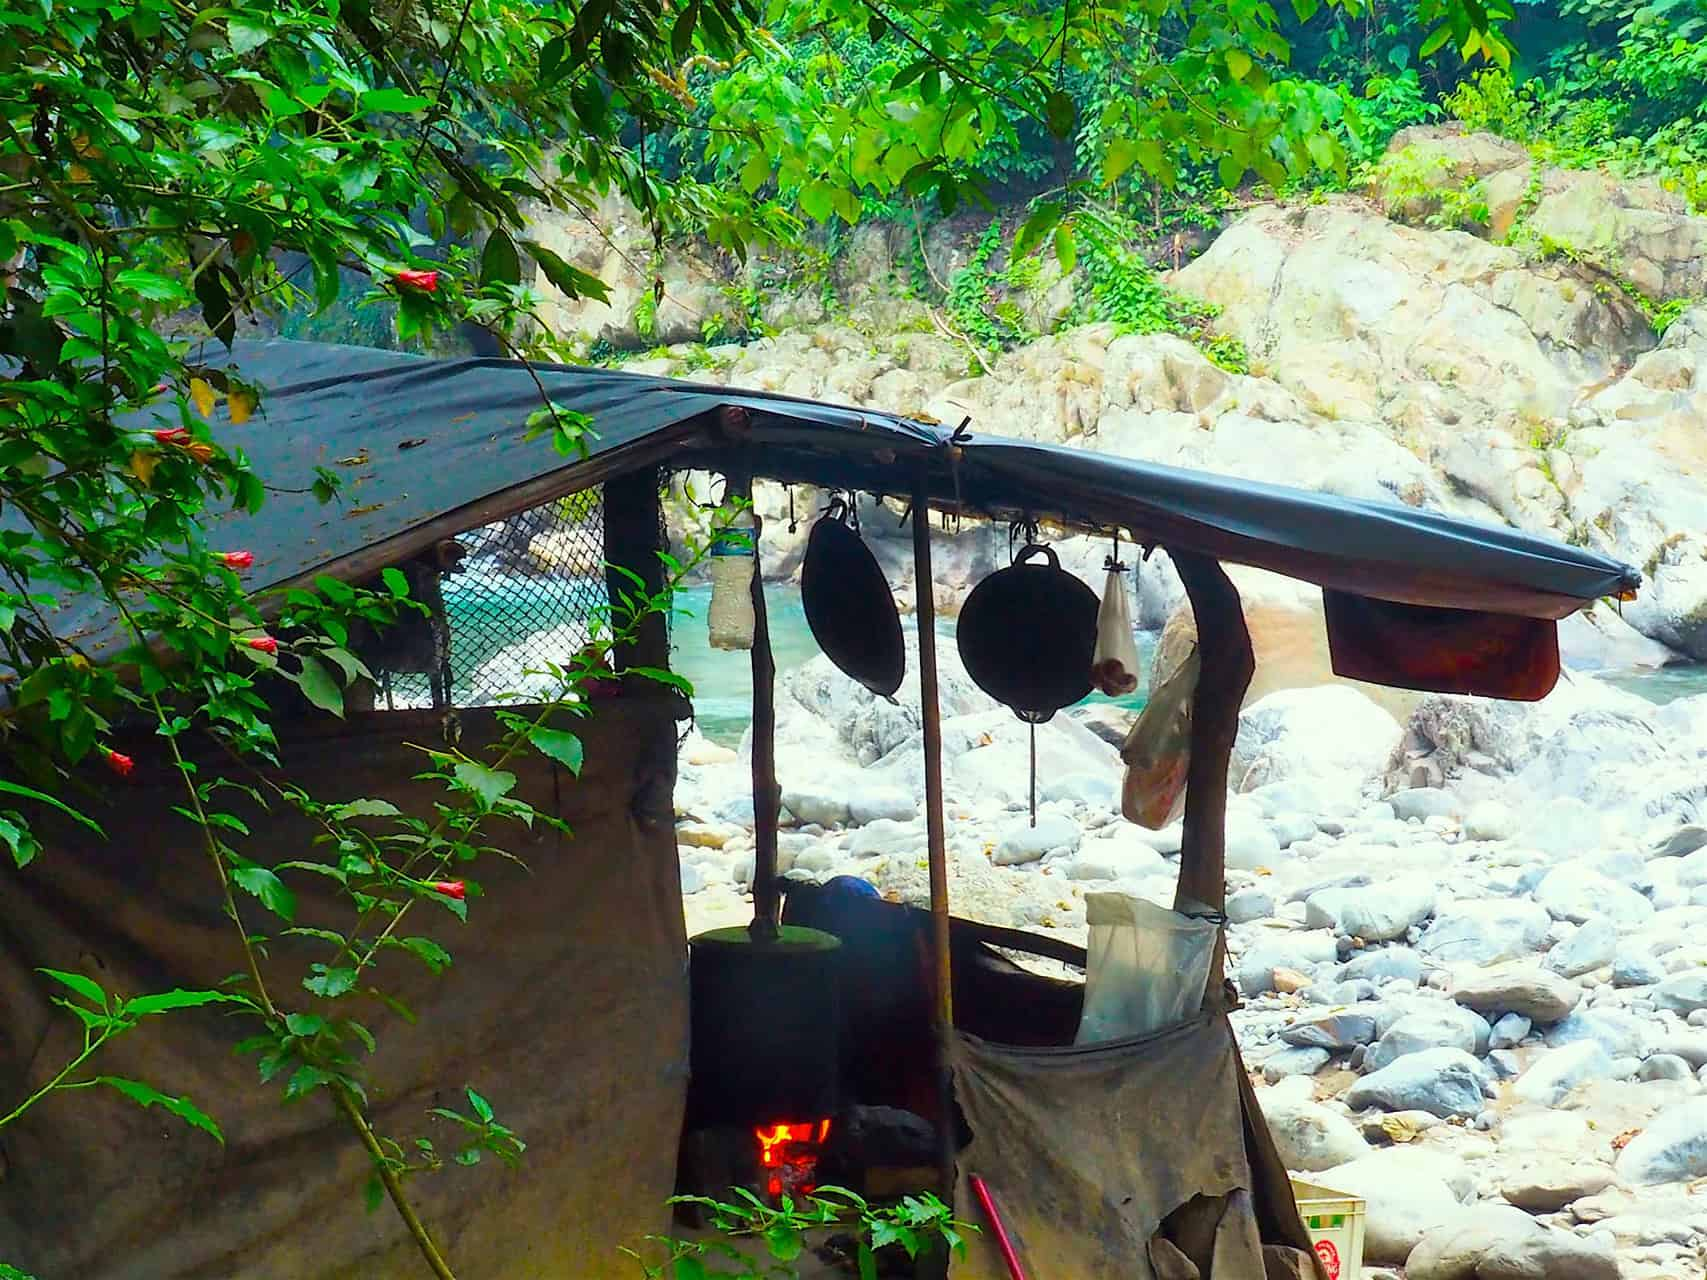 JUNGLE KITCHEN - 3-DAY TREK - JUNGLE TREKKING - BUKIT LAWANG - SUMATRA ECOTRAVEL